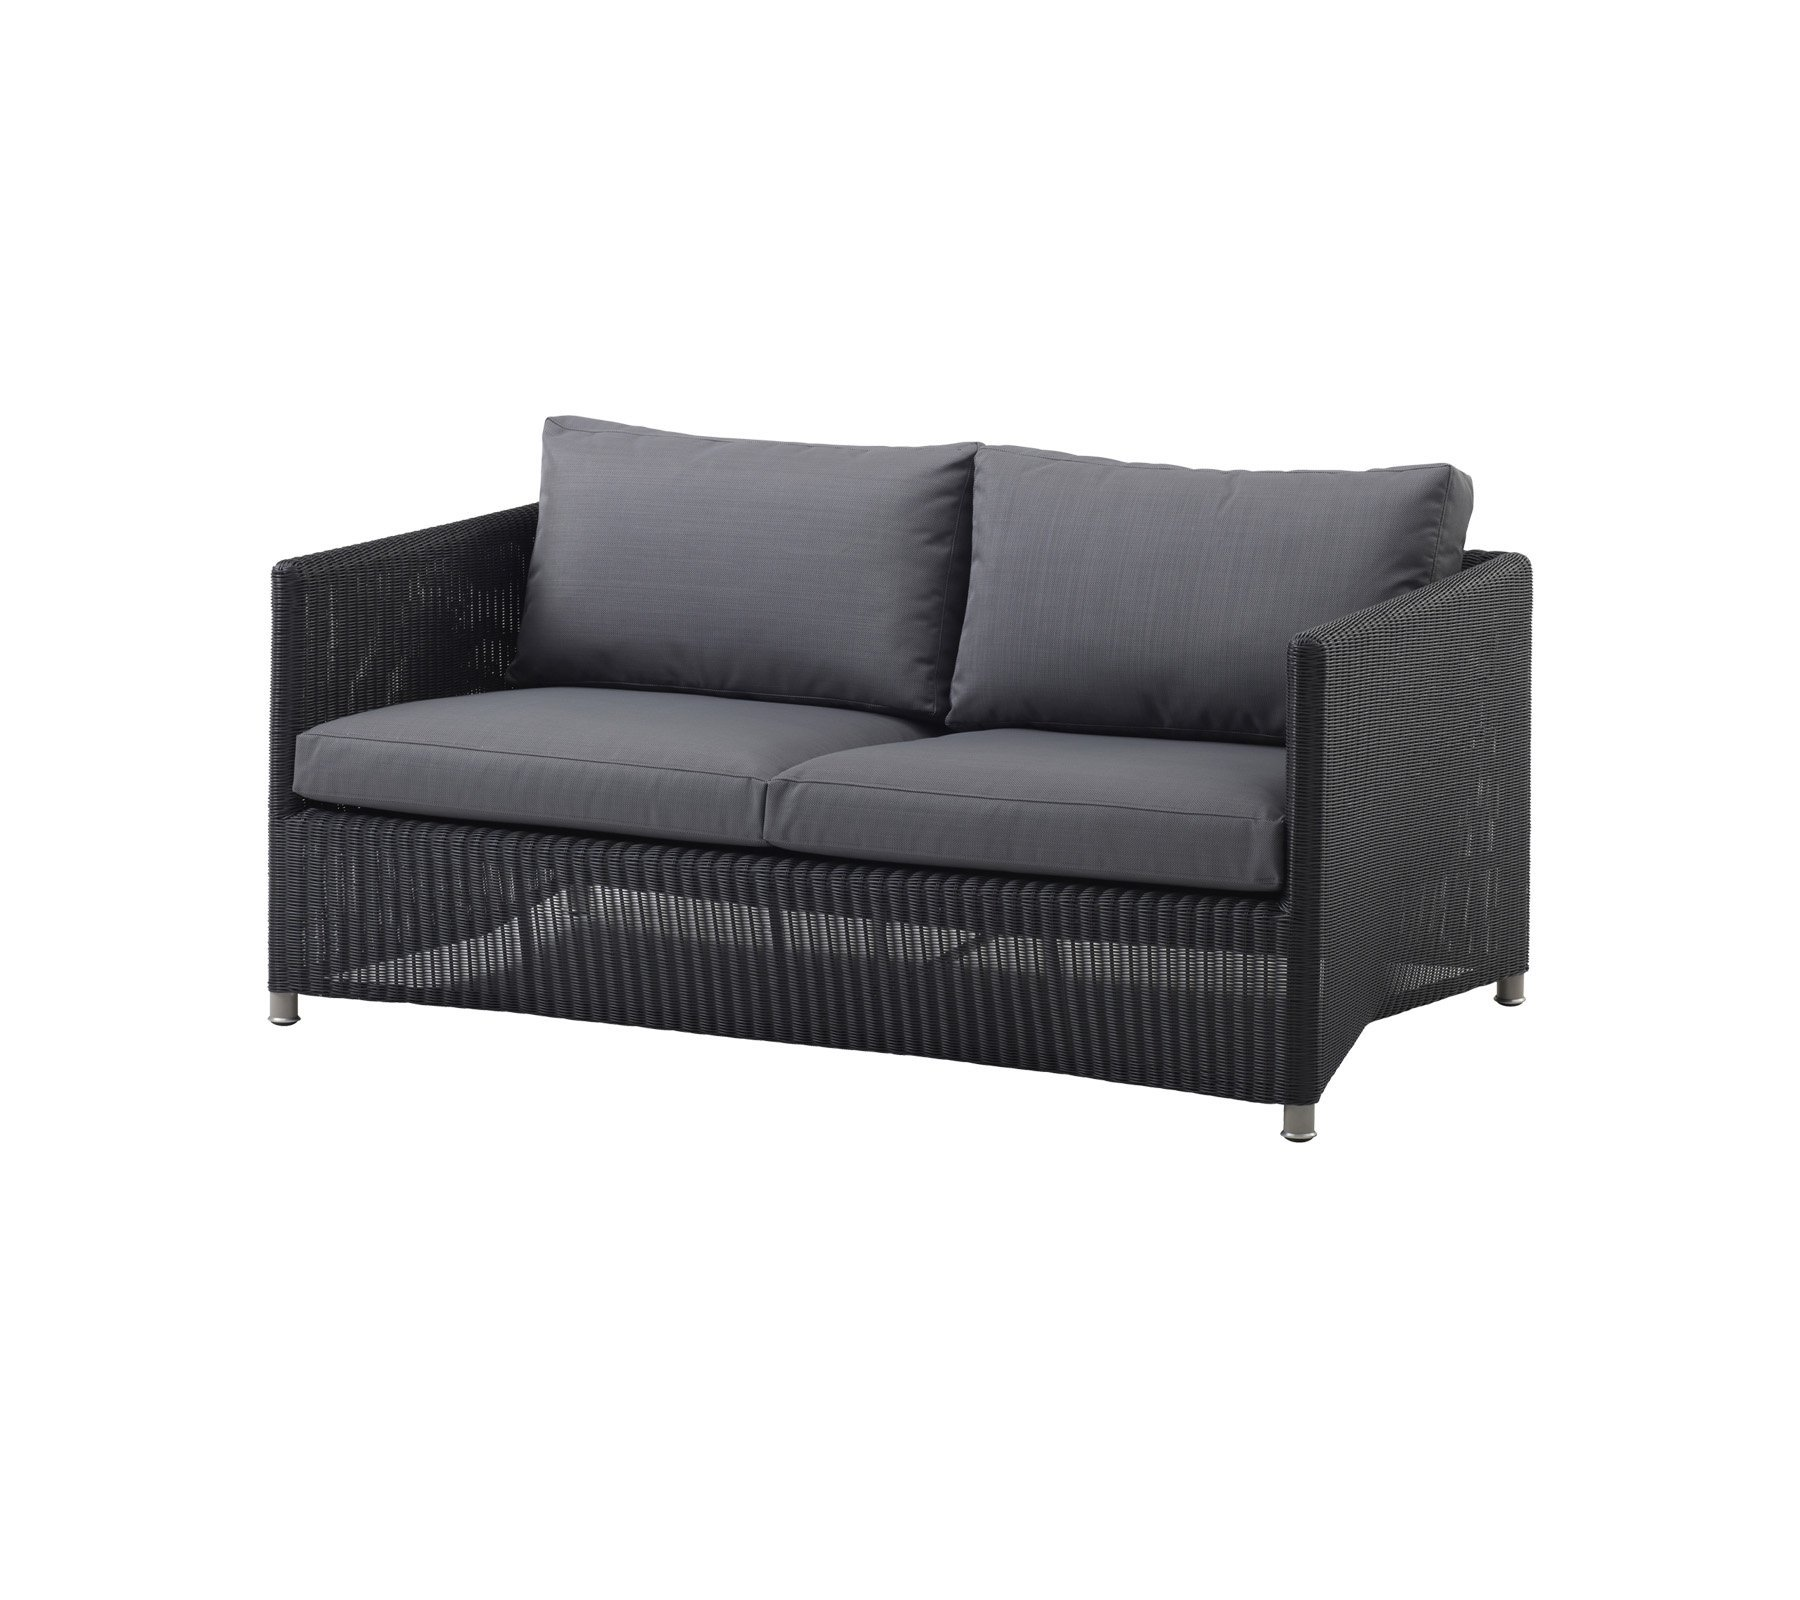 Diamond 2-Seater Sofa from Cane-line